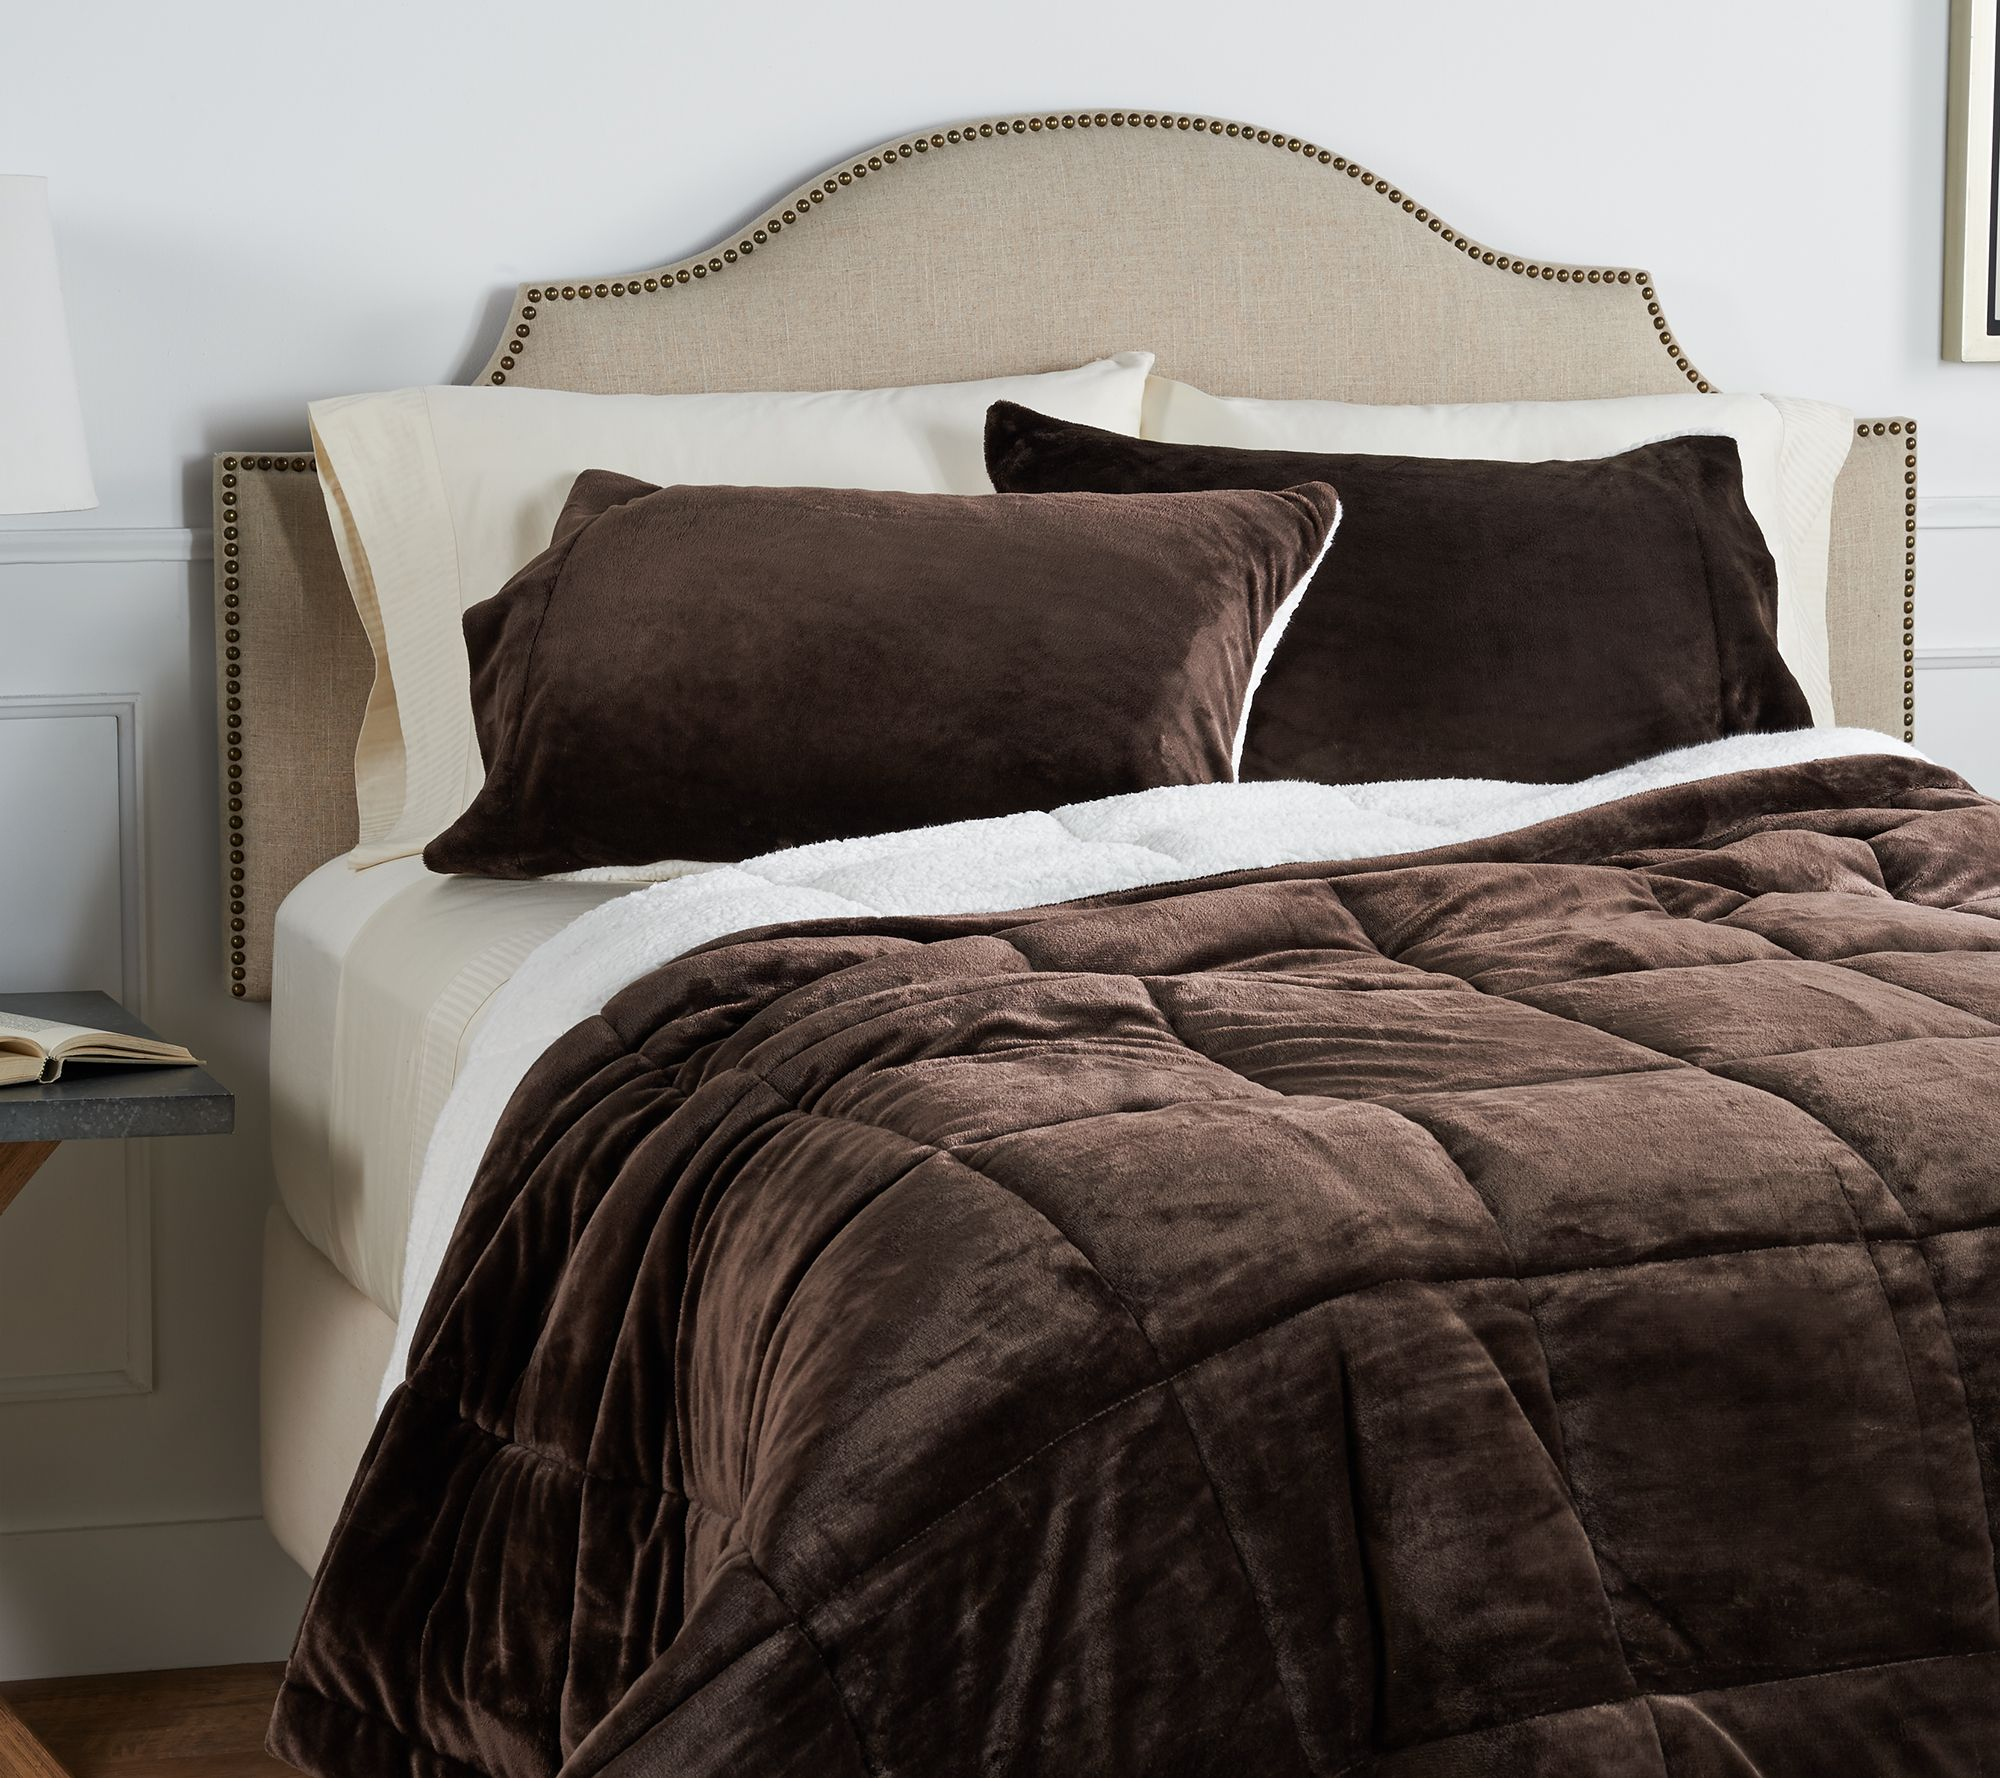 bed co trading brown bedding barbwire product rustic collection link findley chocolate lake image